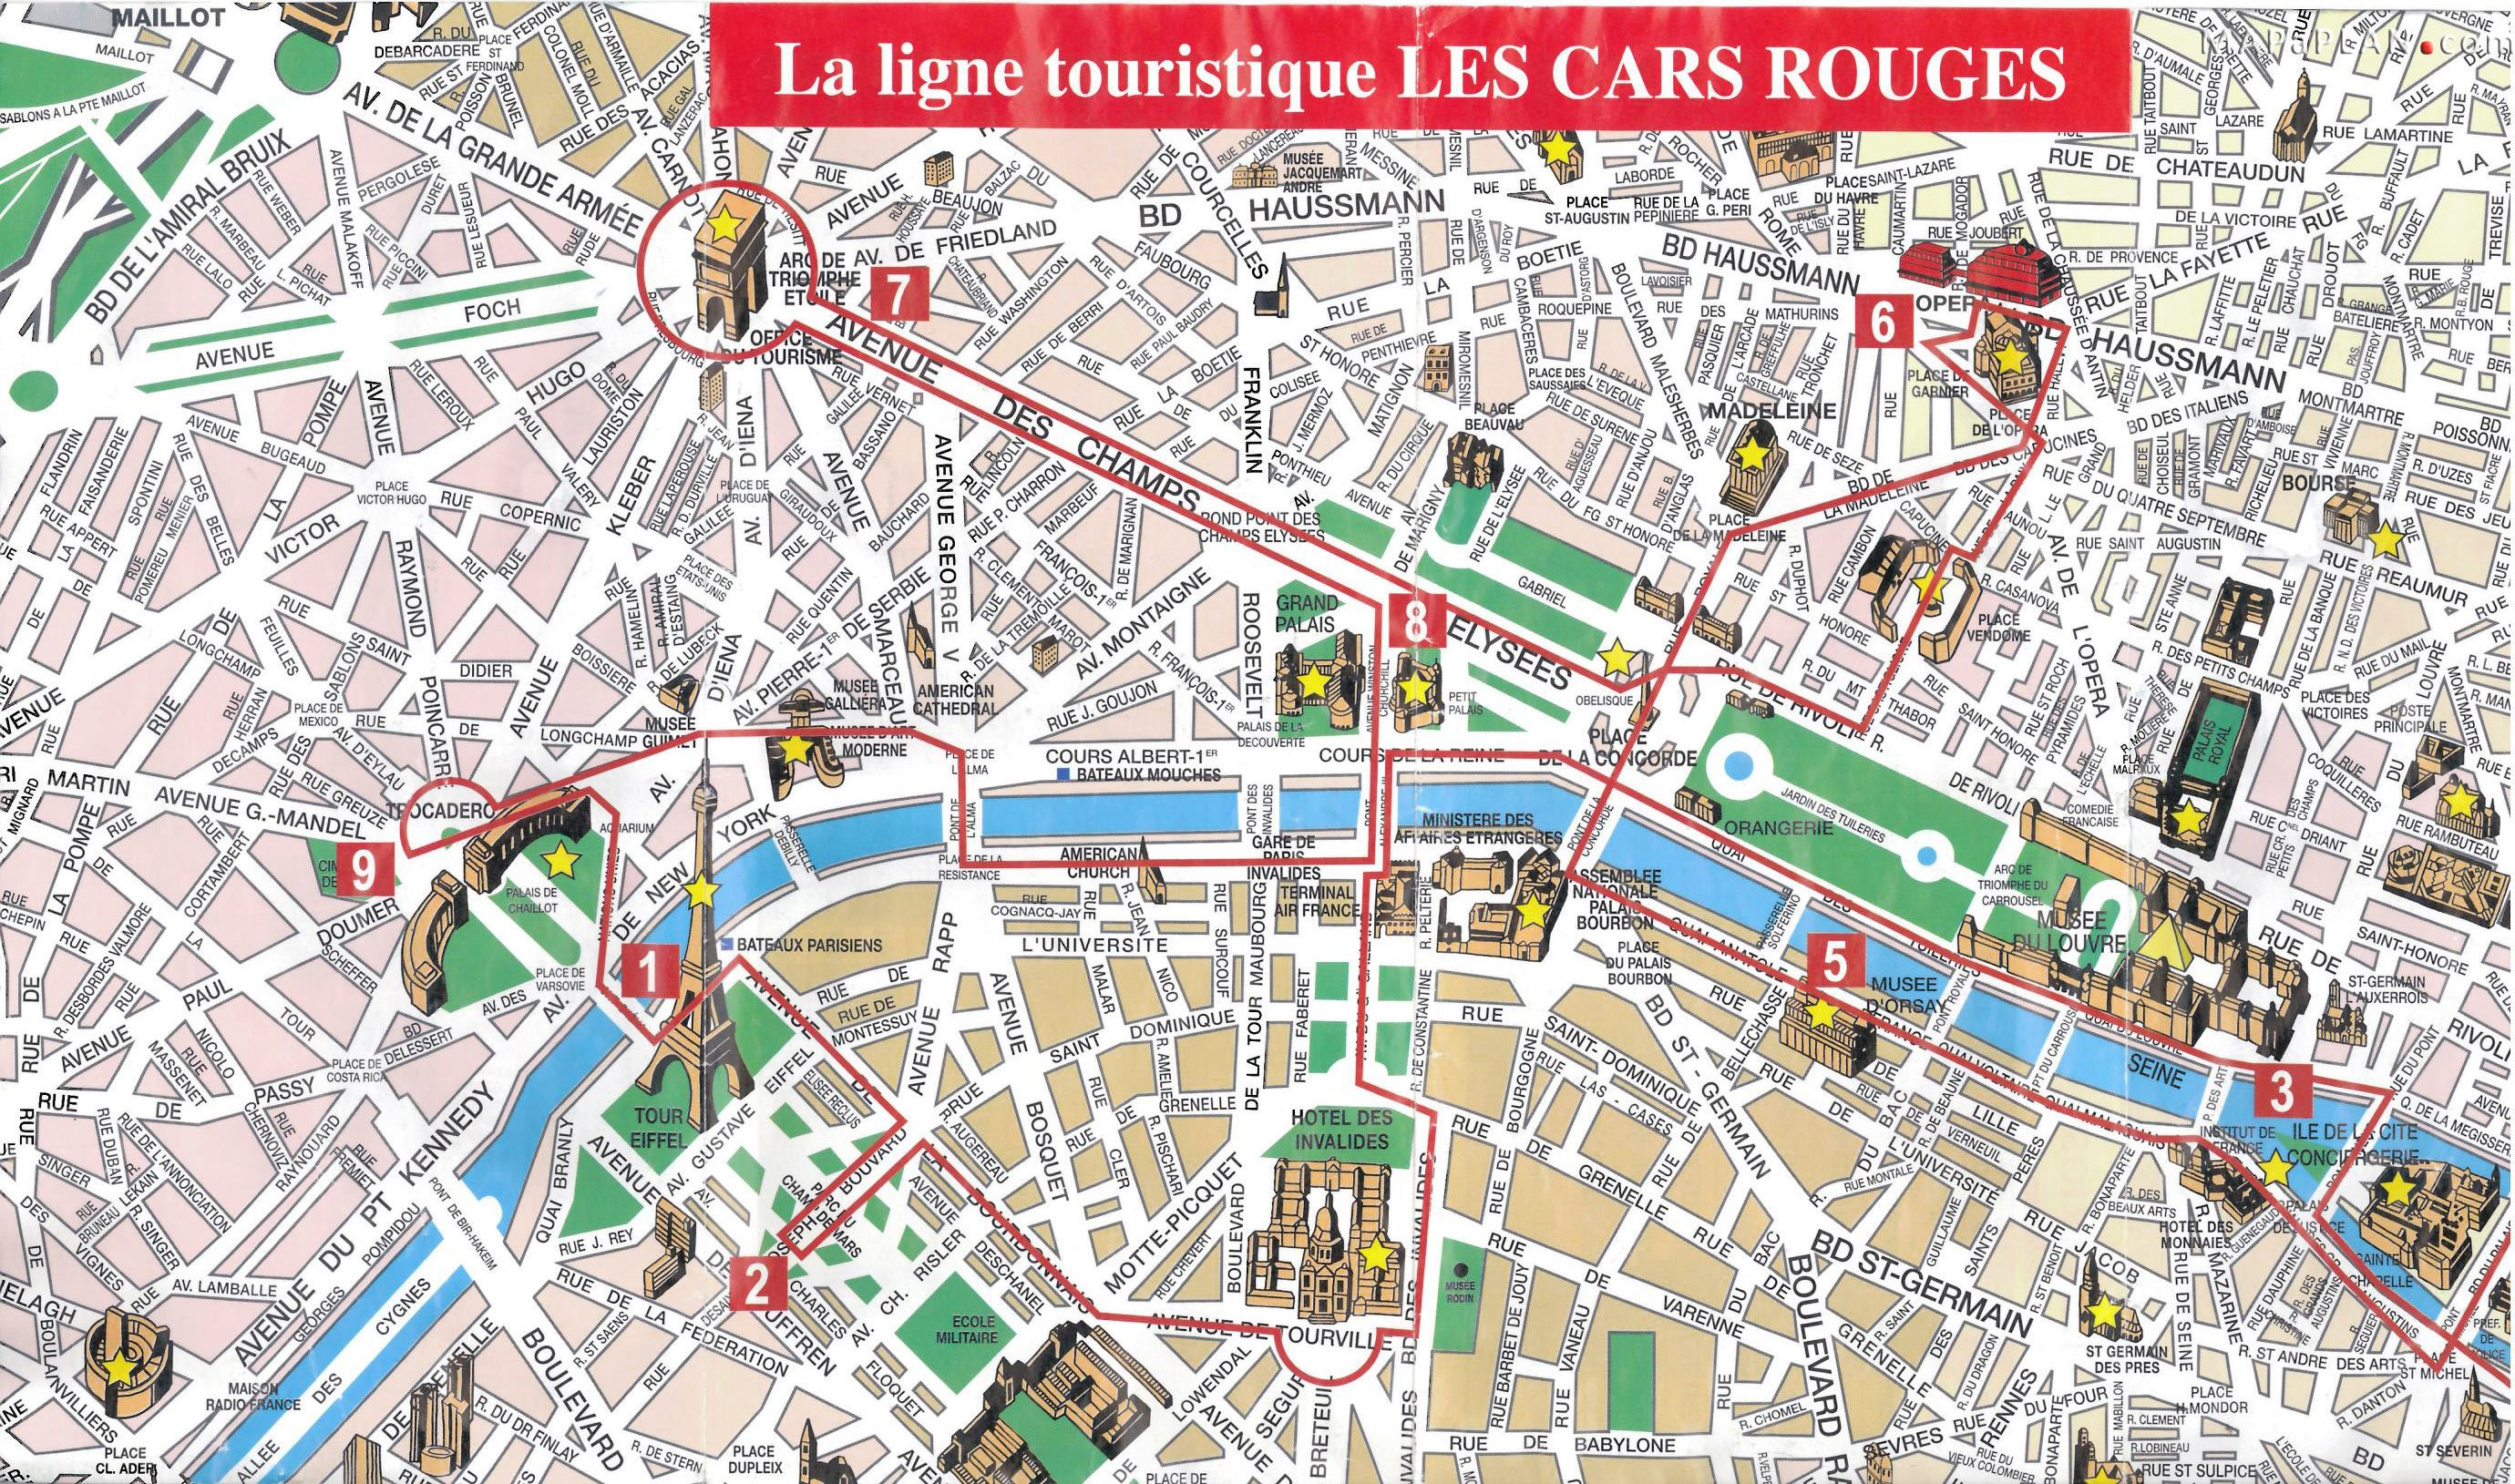 paris top tourist attractions map 08 city sightseeting route planner